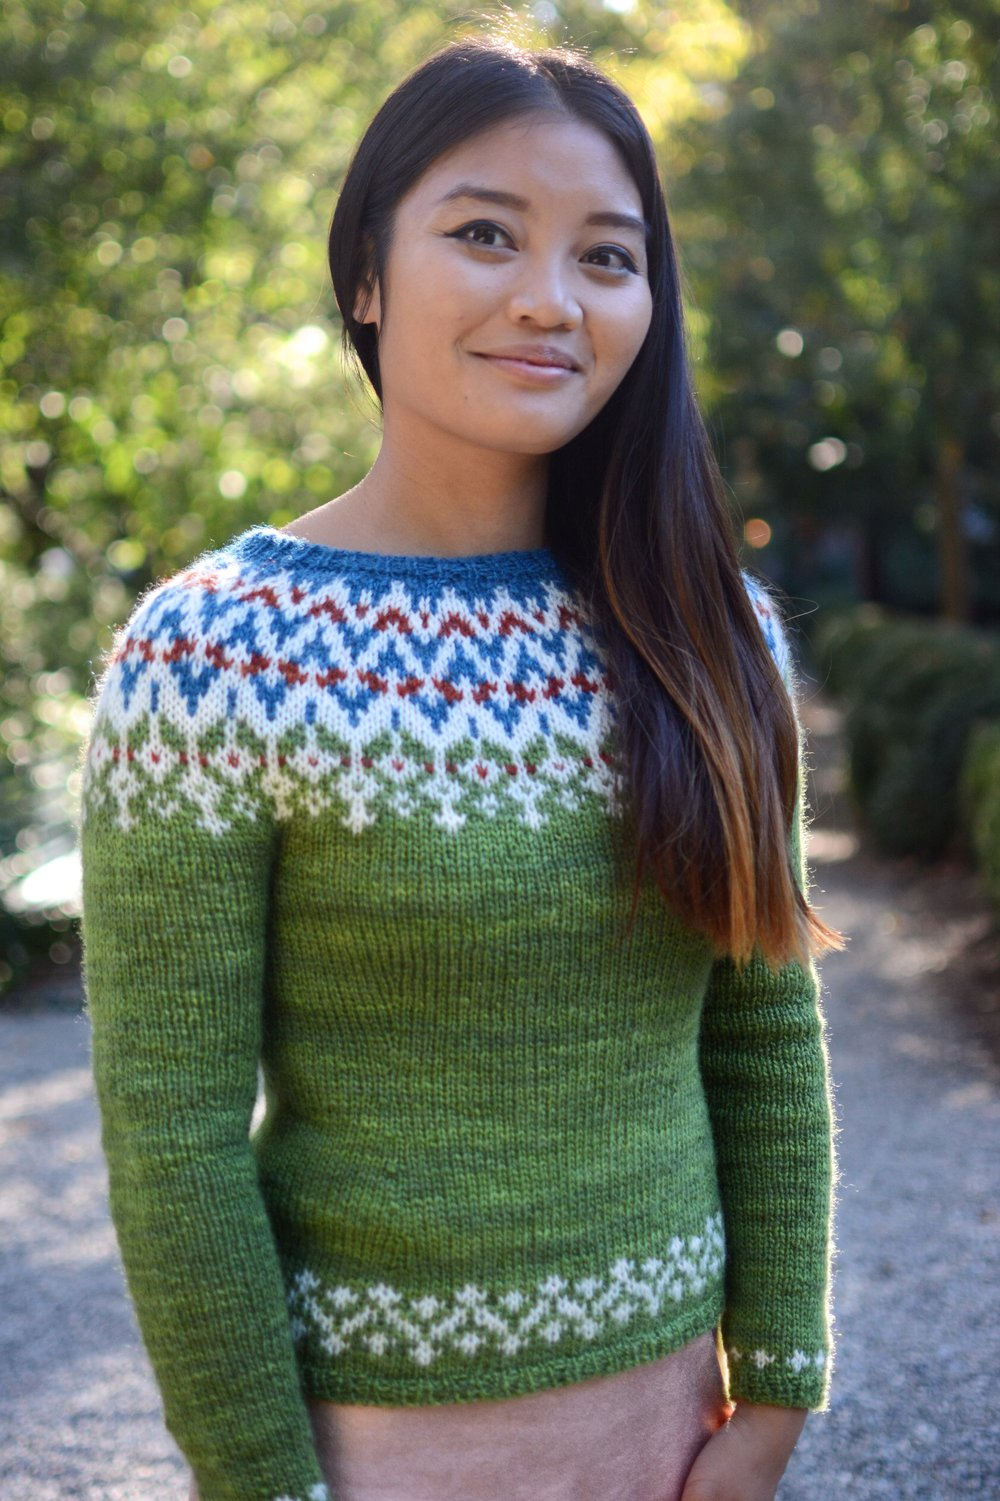 September House Sweater shown in Monhegan Moss, fitted.   Celebrate the coming of cool weather with our exclusive new sweater kit. Maine Yarn & Fiber Supply has teamed up with the incomparable knitwear designer, Kirsten Kapur (throughtheloops), to bring you the first in our series of breed specific, Maine raised and spun, curated yarn kits.  Our September House Kit, features the silky, lustrous and strong fleece from Coopworth sheep.Coopworth is a favorite in our shop, known for its soft hand, long wear and luminous shine. All of this yarn hails from French Hill Farm in Northern Maine. Perched high on a hill above the Kennebec River, this 80 acre farm has been home to Coopworth sheep for nearly 30 years. Sadly, this hand selected clip is the last from this soil, as the Shepherdess is retiring after many years working with her Coopworth, to bring forward the very best genetic attributes of this breed. We are proud to offer this one of a kind yarn to you in our sweater kit.  We have designed this yarn as a semi-woolen spun 2-ply DK, spun locally to our specifications.  The original and exclusive pattern is a yoked sweater that is knit in the round. Kirsten Kapur has designed a truly lovely sweater, playing with our colors and the energy of this yarn perfectly. The pattern allows you to choose between a fitted sweater with waist shaping, or a more boxy style with more positive ease. It is available in two different color options: Monhegan Moss, as shown above, or Point of Maine (see additional photos). Simply select your preference from the drop down menu when adding it to your cart.  As with all small batch agricultural crops, this yarn has limited availability, and we encourage you to pre-order to secure your sweater! We are offering a special discounted price on all pre-orders, available now through 11/1/17.  The yarn for your September House Sweater Kit will be dyed to order and shipped to you along with:  ~A printed copy of the pattern  ~An emailed digital file co